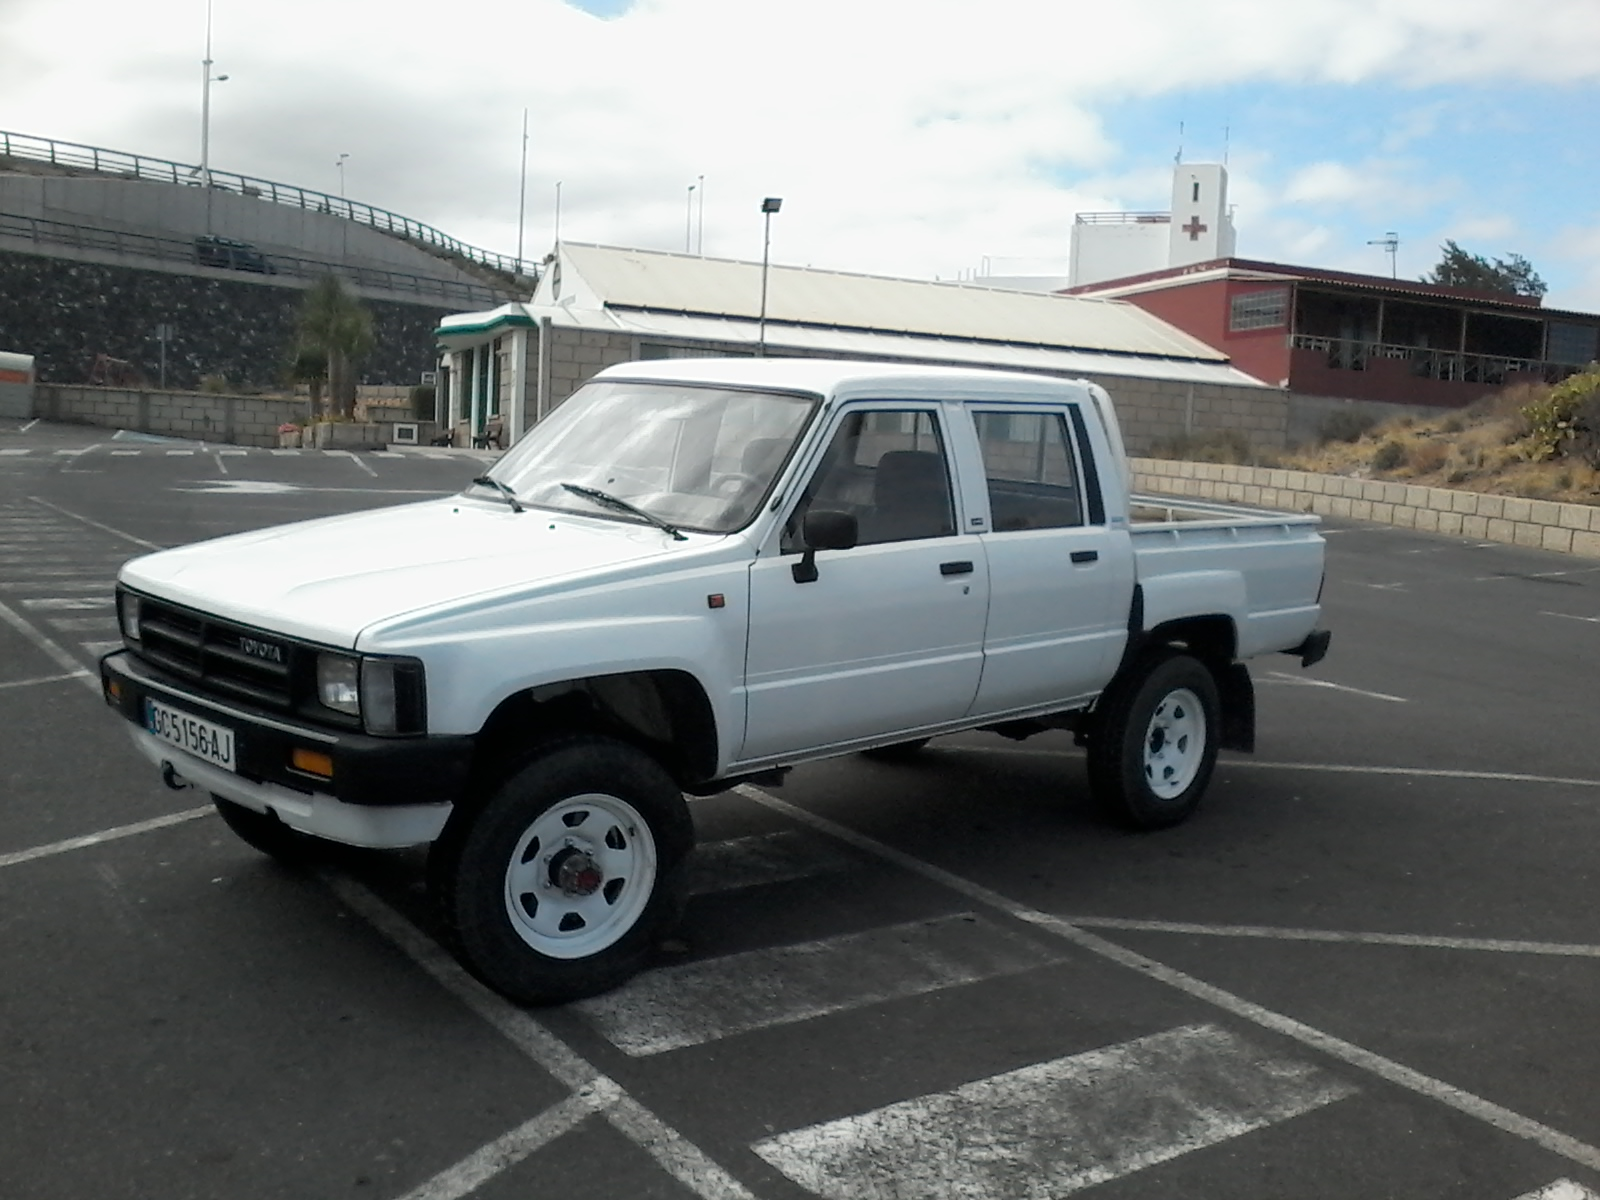 sold 1988 toyota hilux double cab 4 4 pickup truck. Black Bedroom Furniture Sets. Home Design Ideas